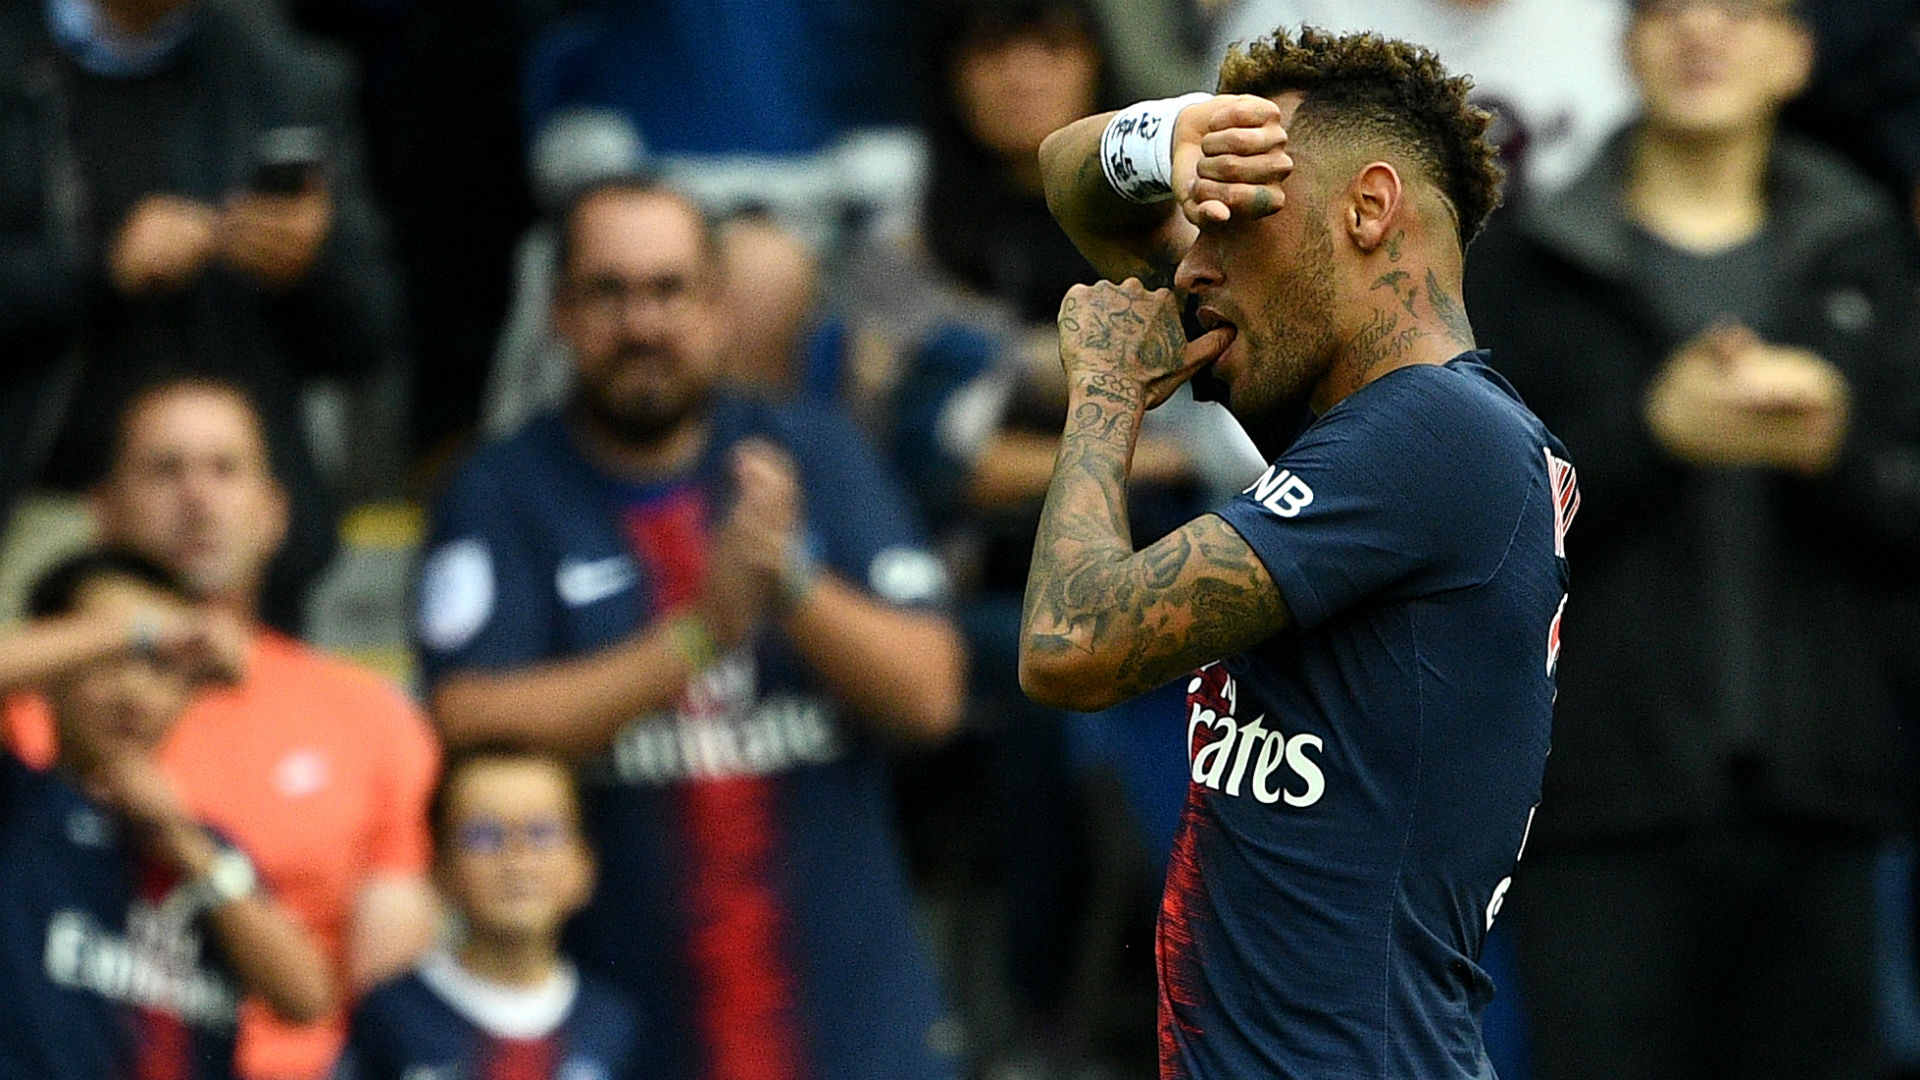 Ligue 1 Report: Paris Saint-Germain v Angers 25 August 2018